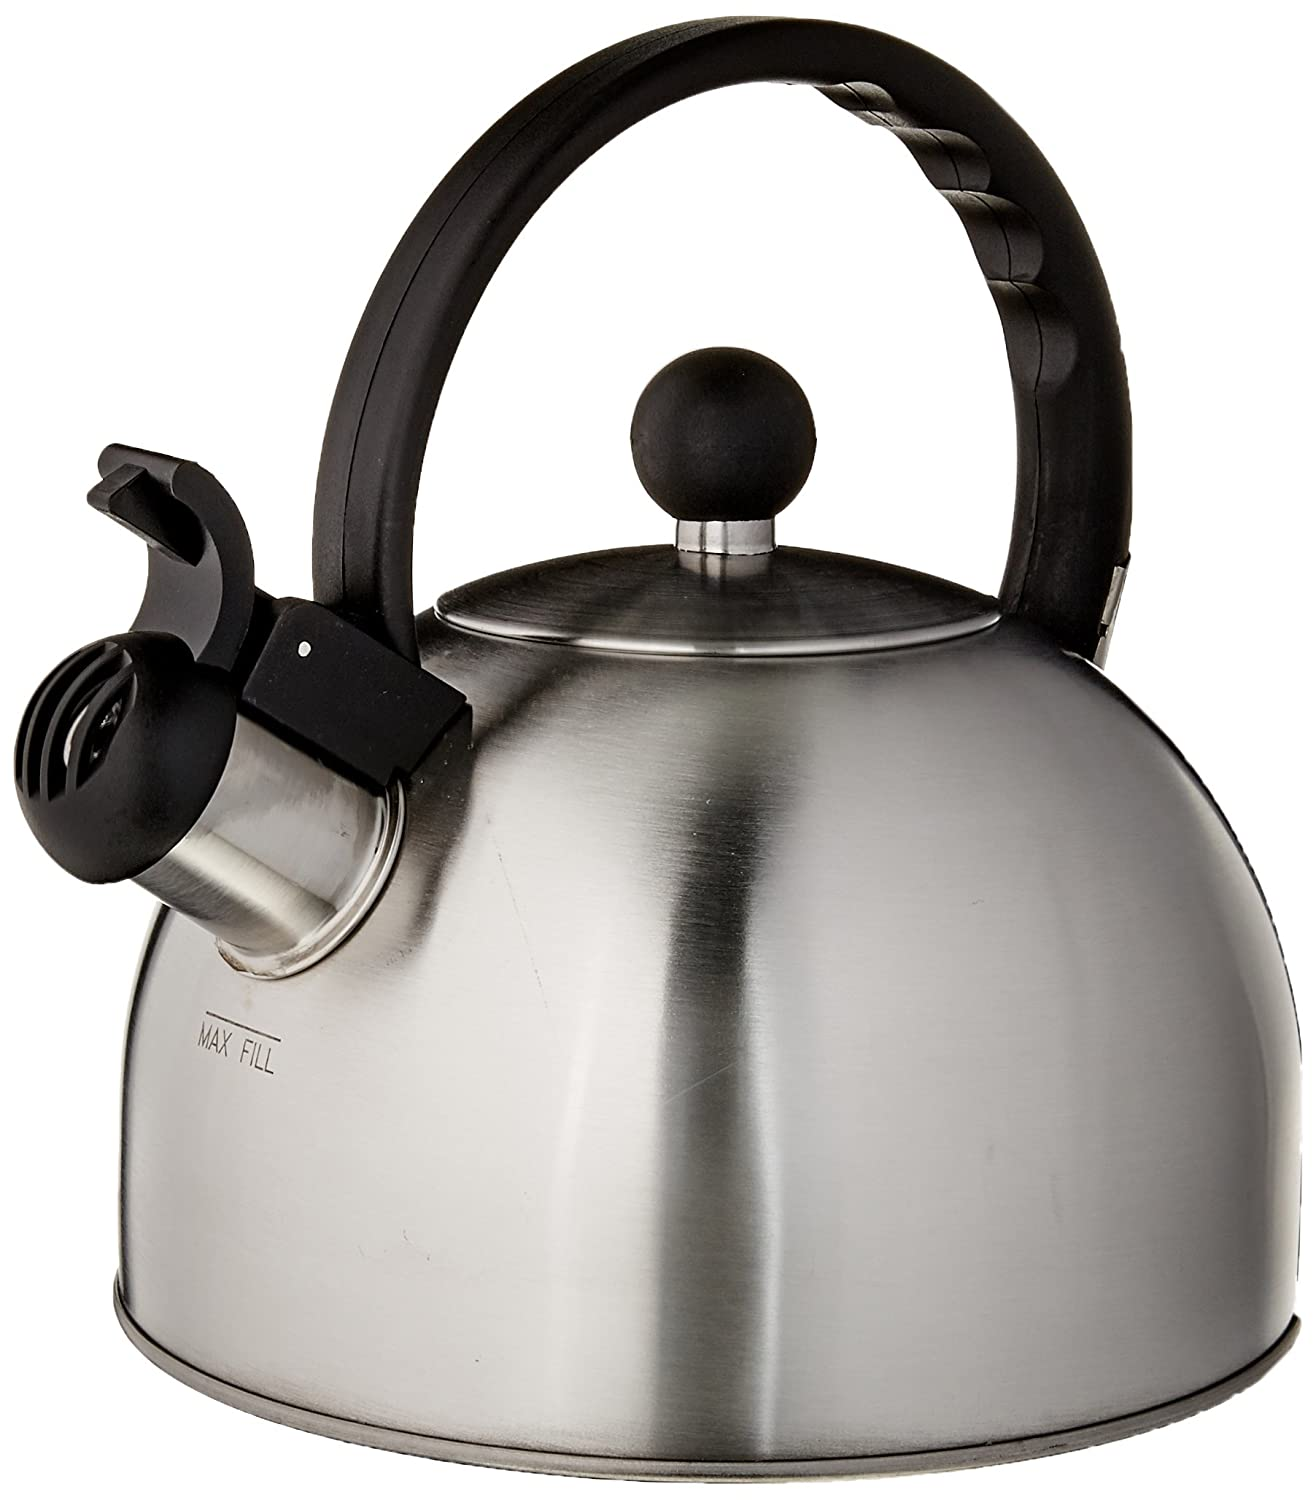 Copco 2503-7797 Tucker Brushed Stainless Steel Tea Kettle, 1.5-Quart